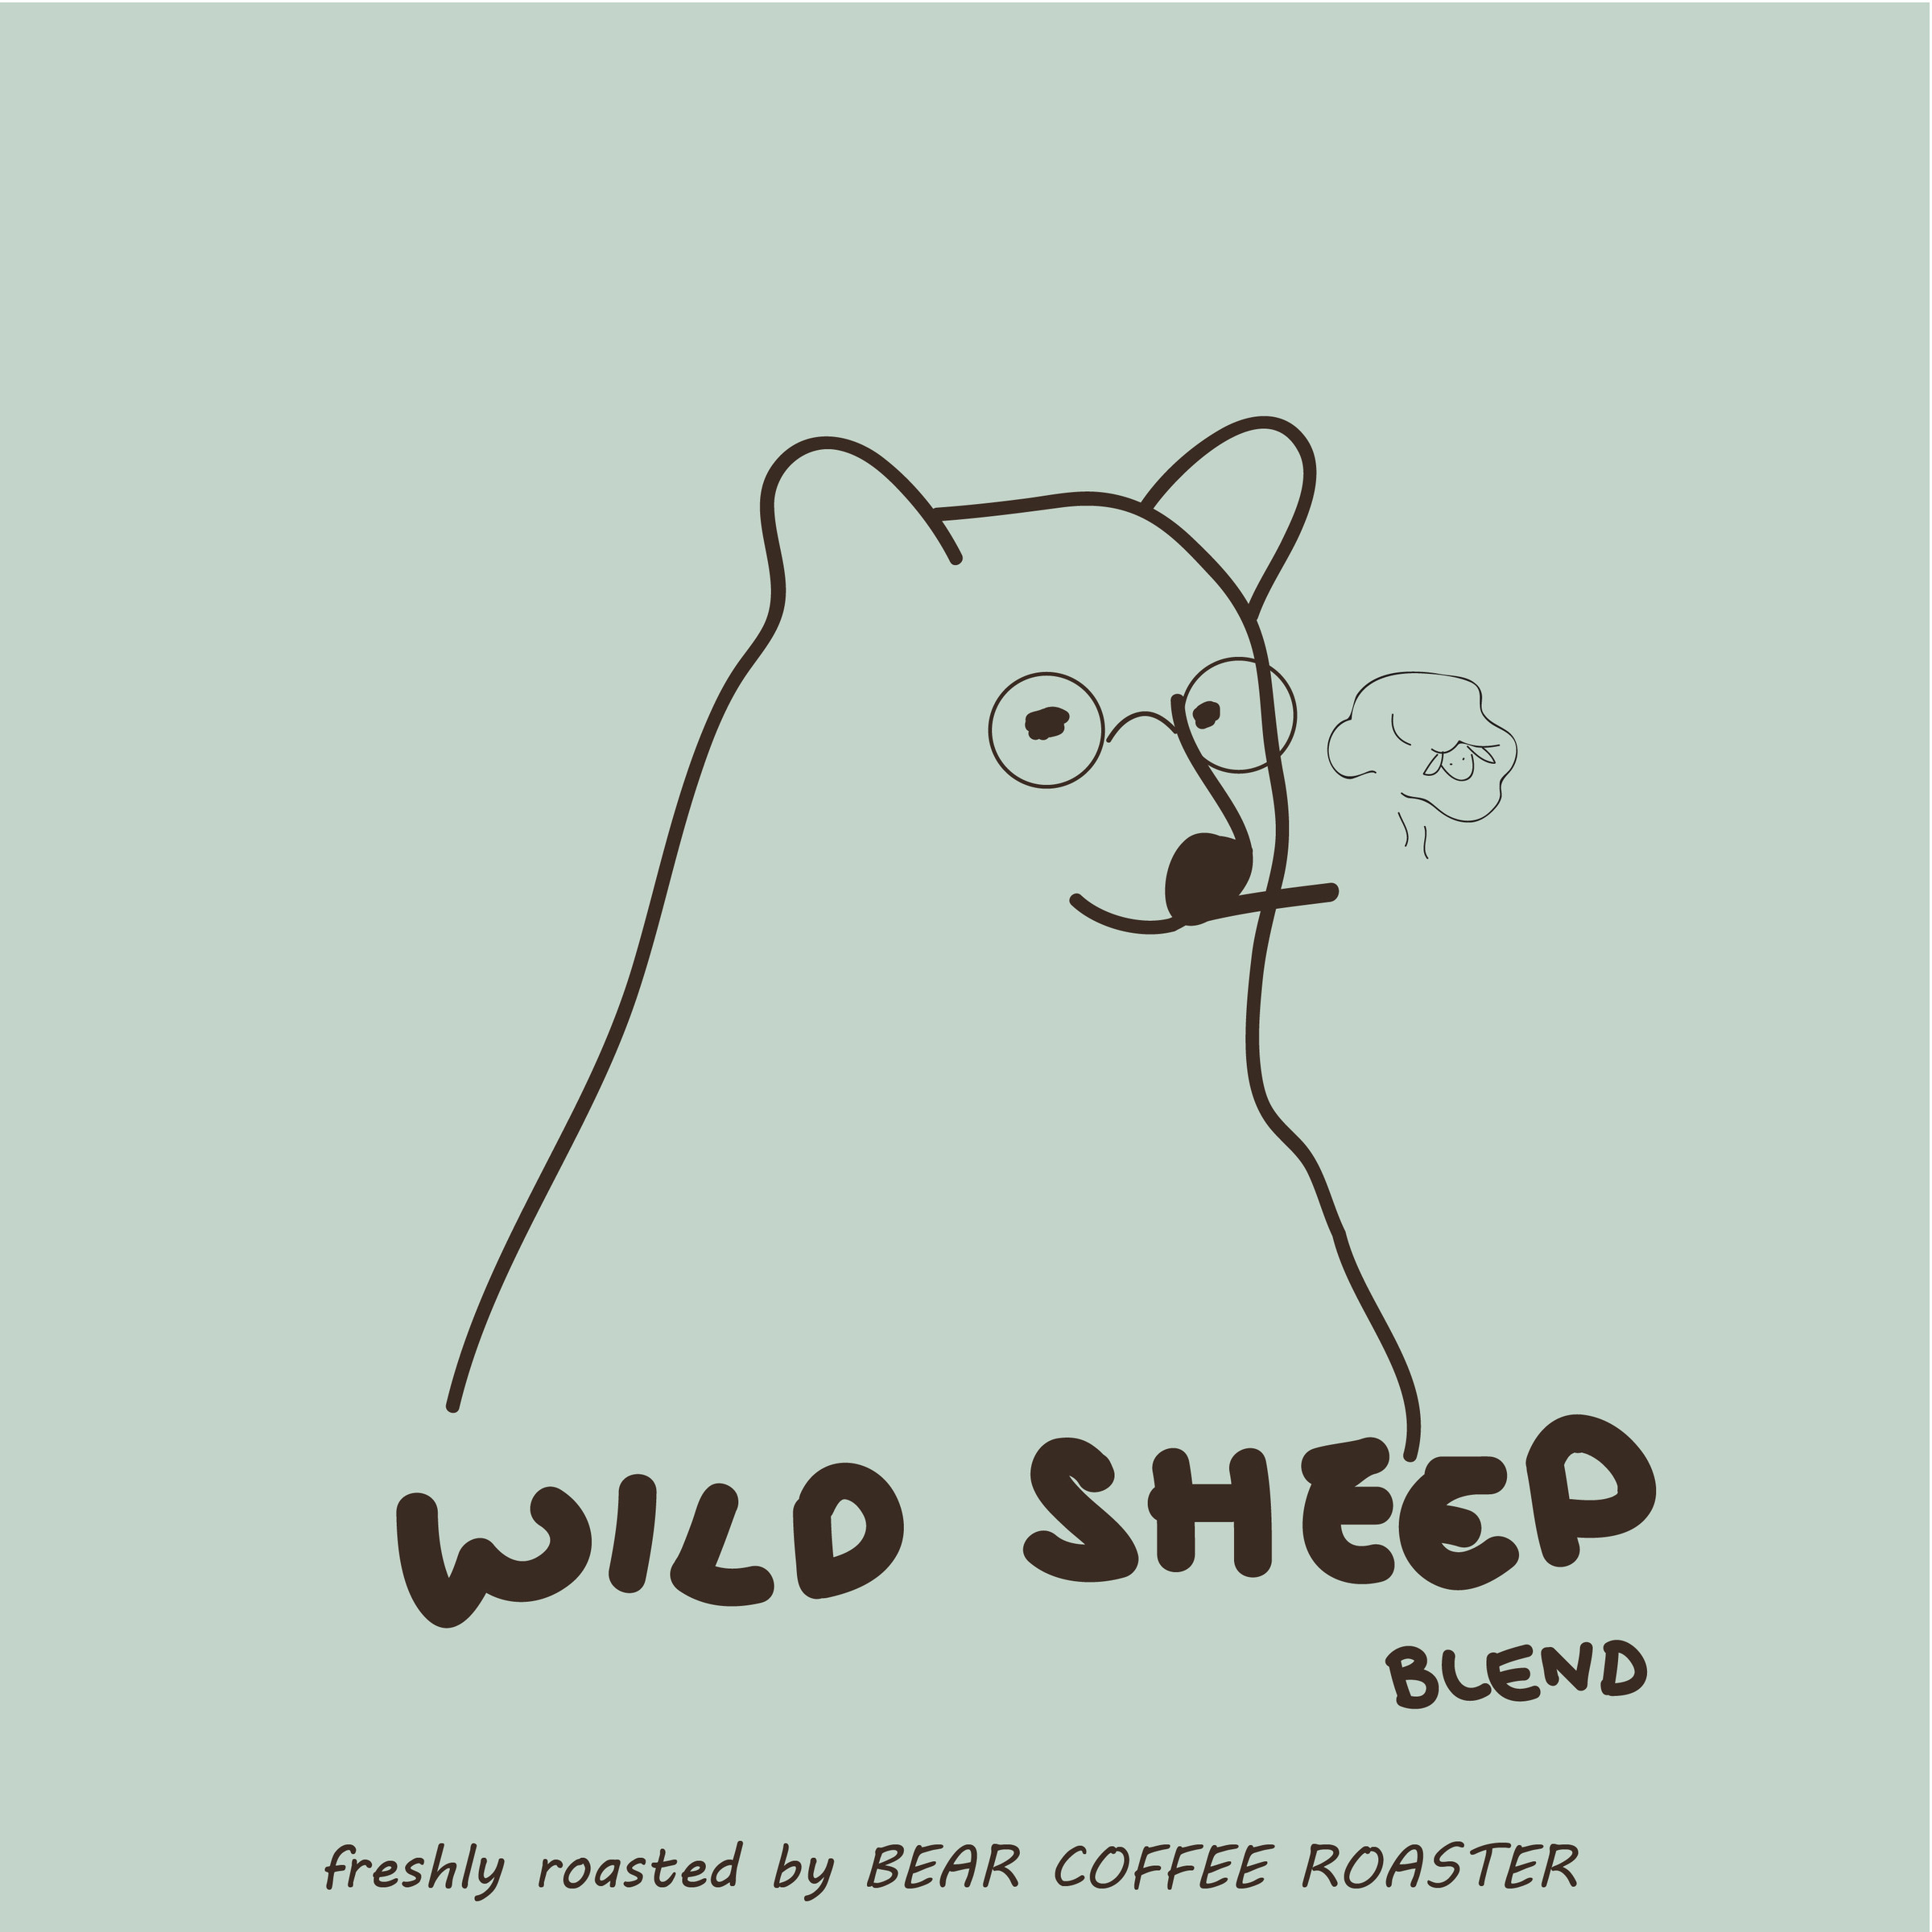 202005BearCoffeeDesign-02.jpg